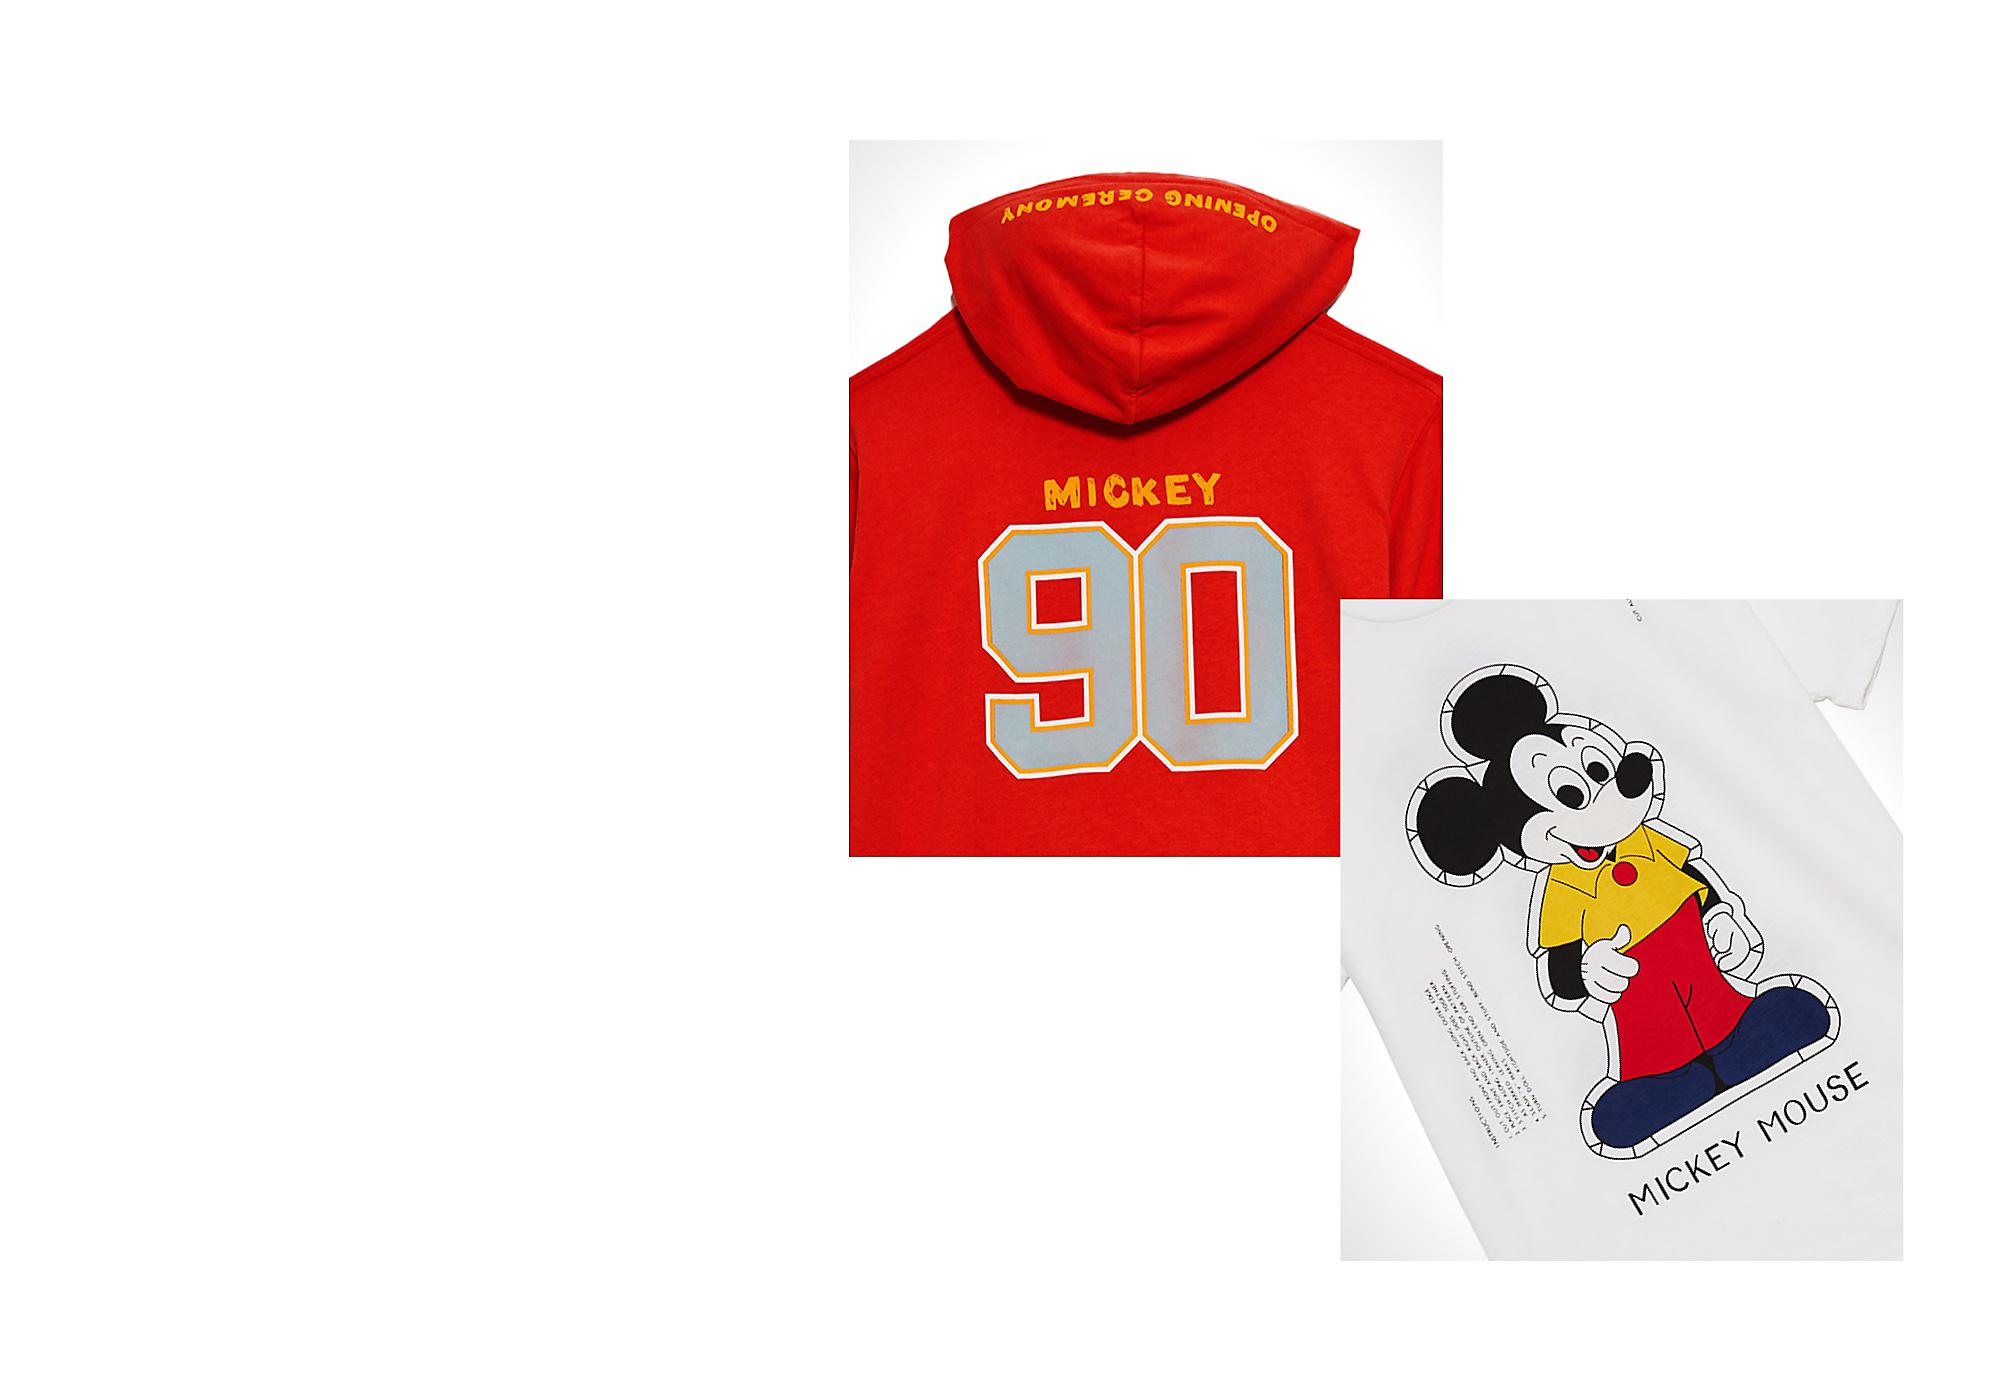 Showcased at Disneyland The Mickey-inspired collection designed by streetwear brand Opening Ceremony is a fashion-forward take on athleisure, first showcased on the runway at Disneyland California.